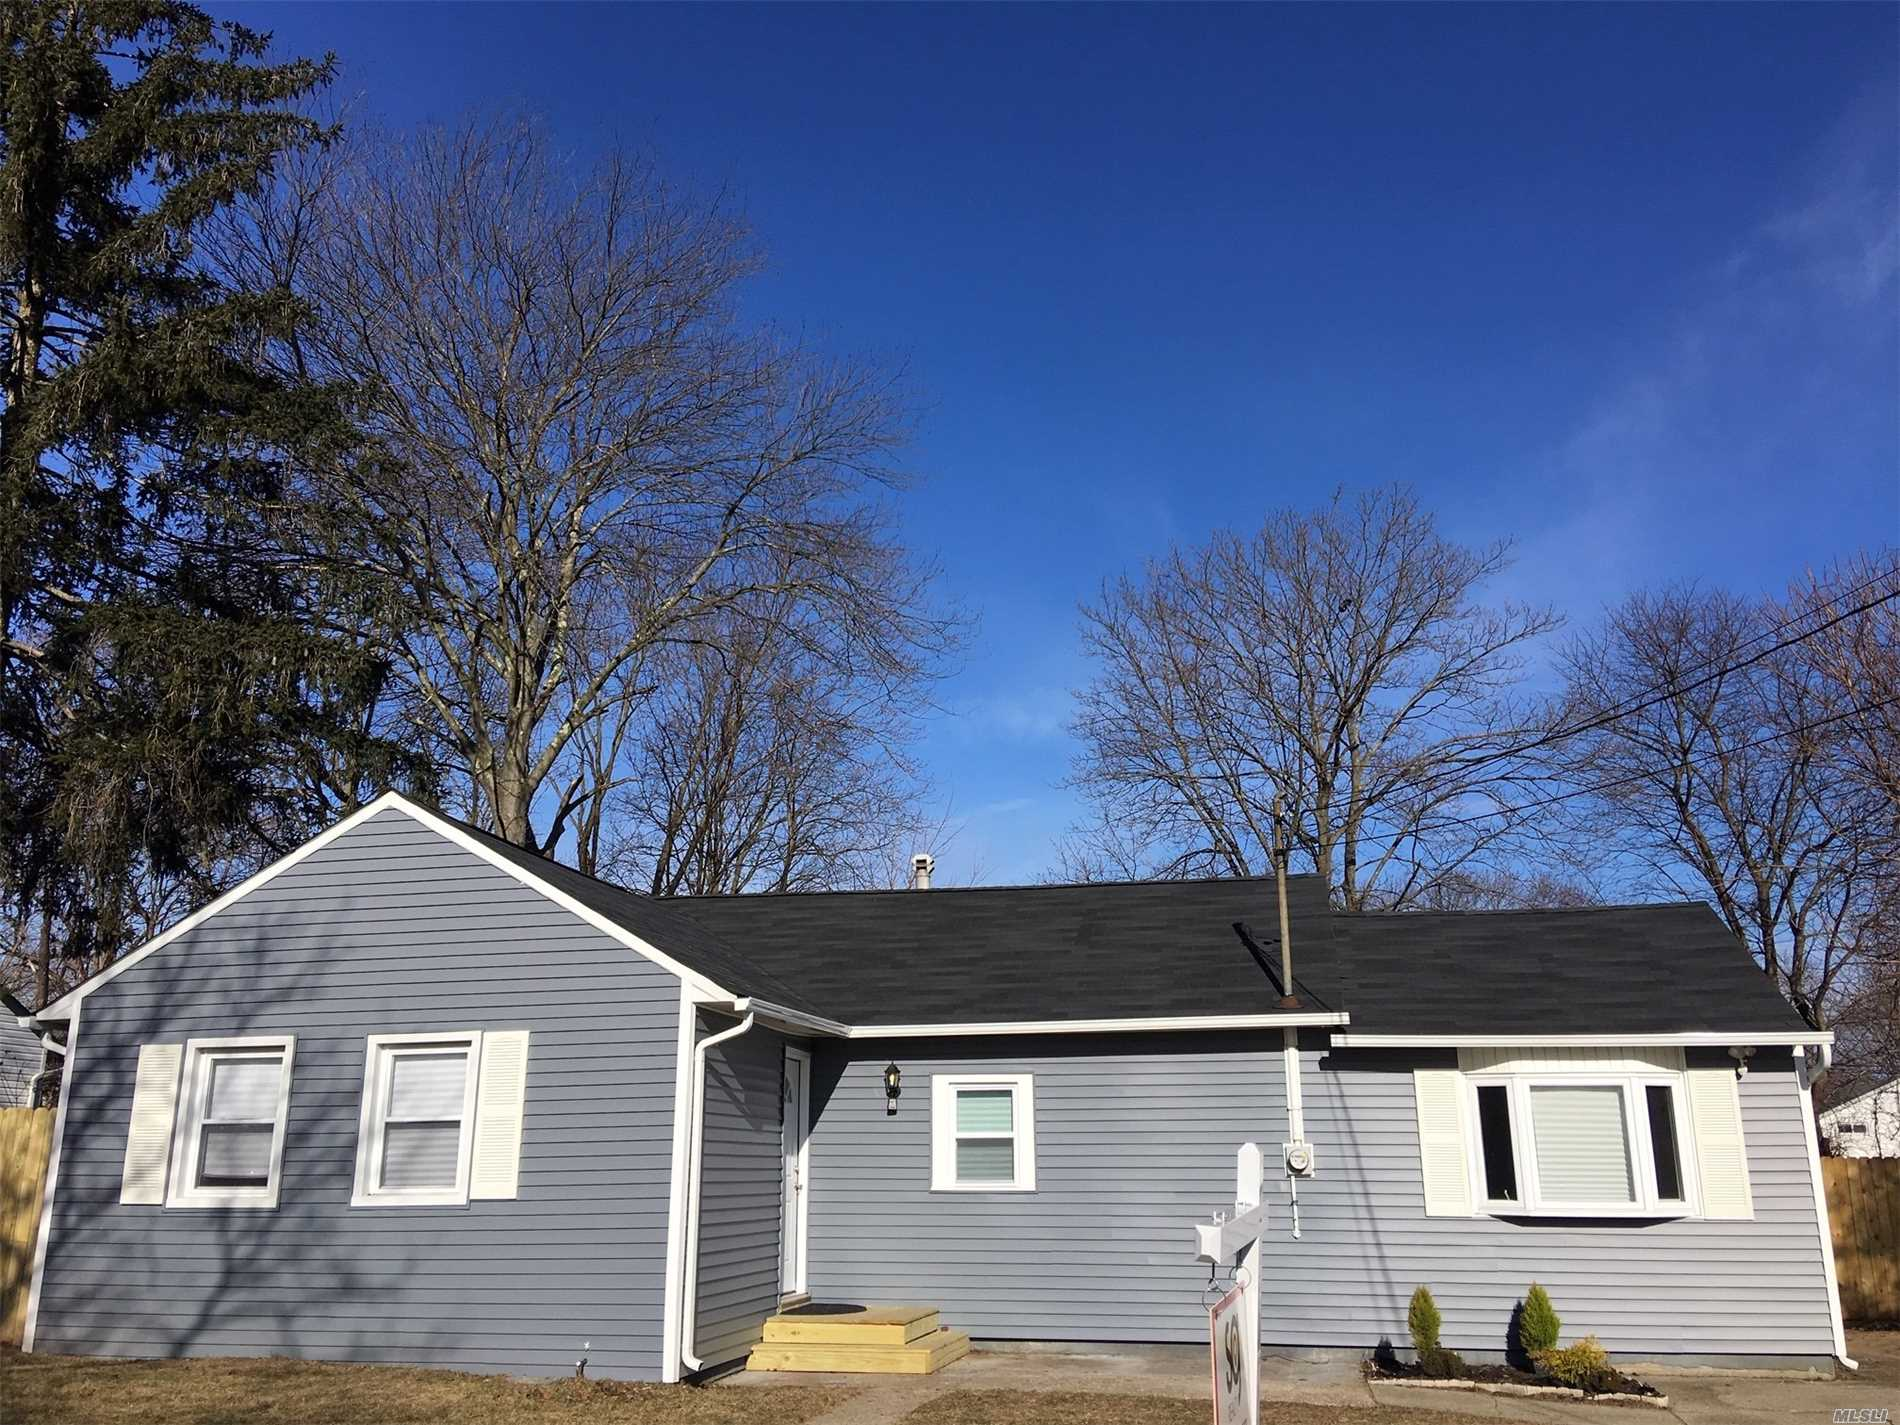 Beautifully Renovated 4-Bedroom Ranch On A Great Block. Wont Last! Open Floor-Plan With New Kitchen W/New Appliances, New Bathroom, New Hardwood Floors, New Roof & Siding, New Plumbing. Too Many More New Items To List. Property Offered For The First 21 Days To Prospective Buyers Making < $109, 000 / 120% Of Ami - Up To $2, 500 Available For Qualified Buyers Based On Income Guidelines.